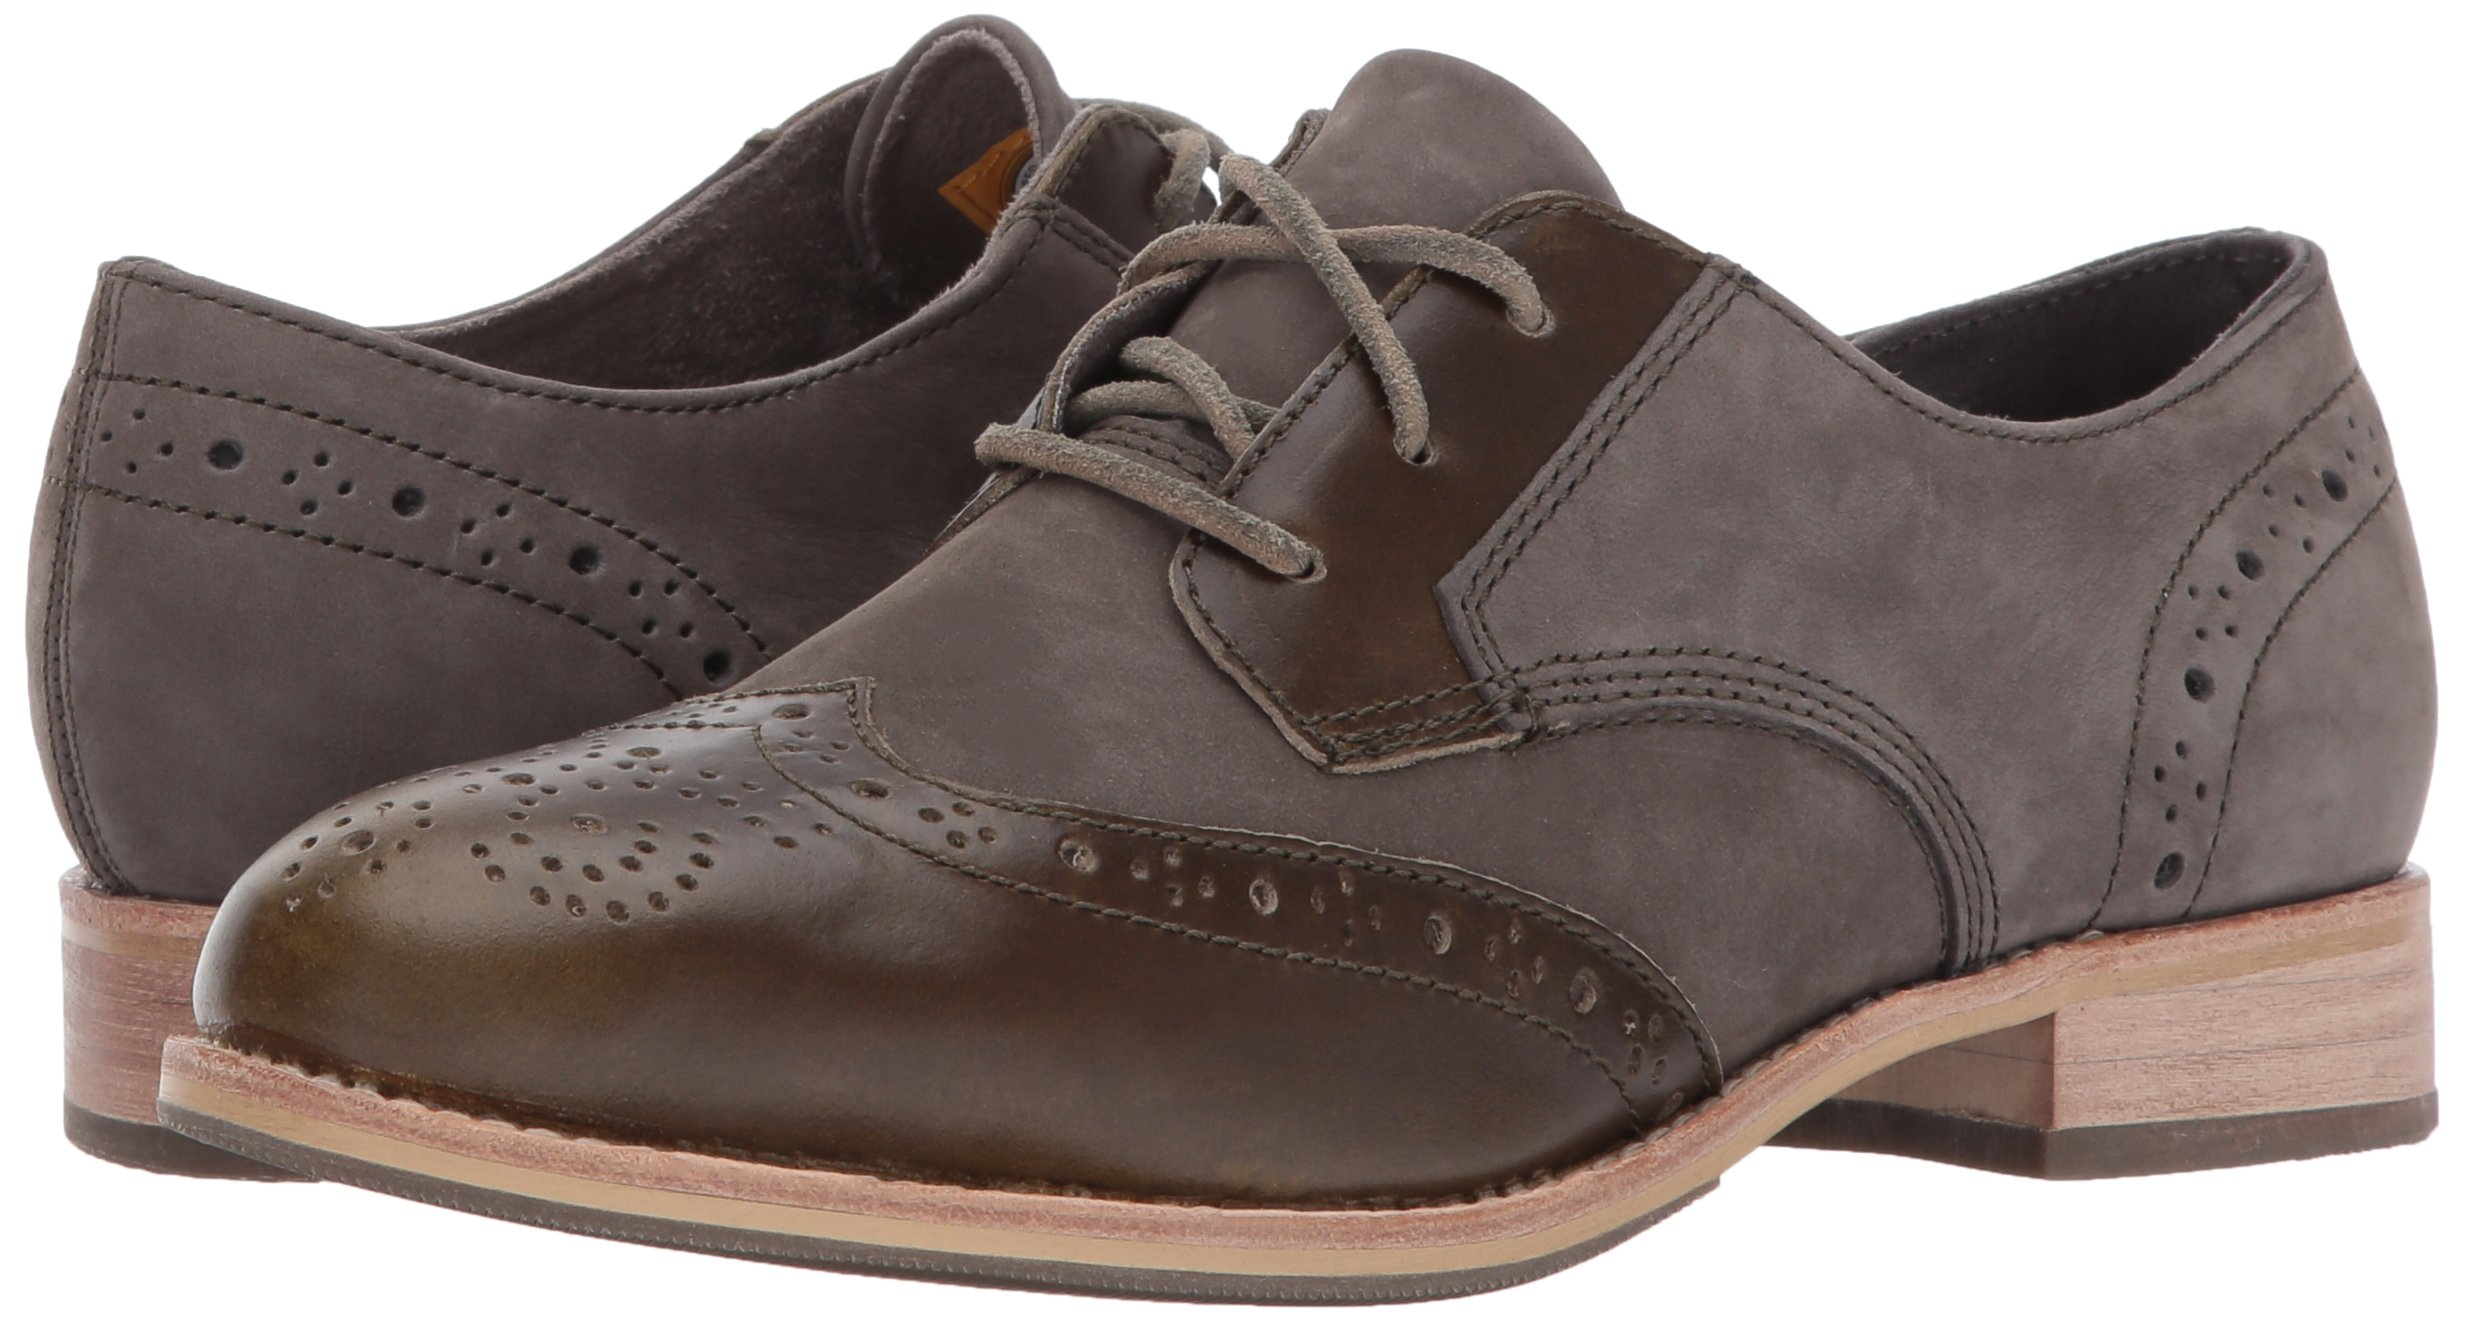 Caterpillar Women's Reegan II Lace up Leather Oxford, Olive, 5.5 Medium US by Caterpillar (Image #6)